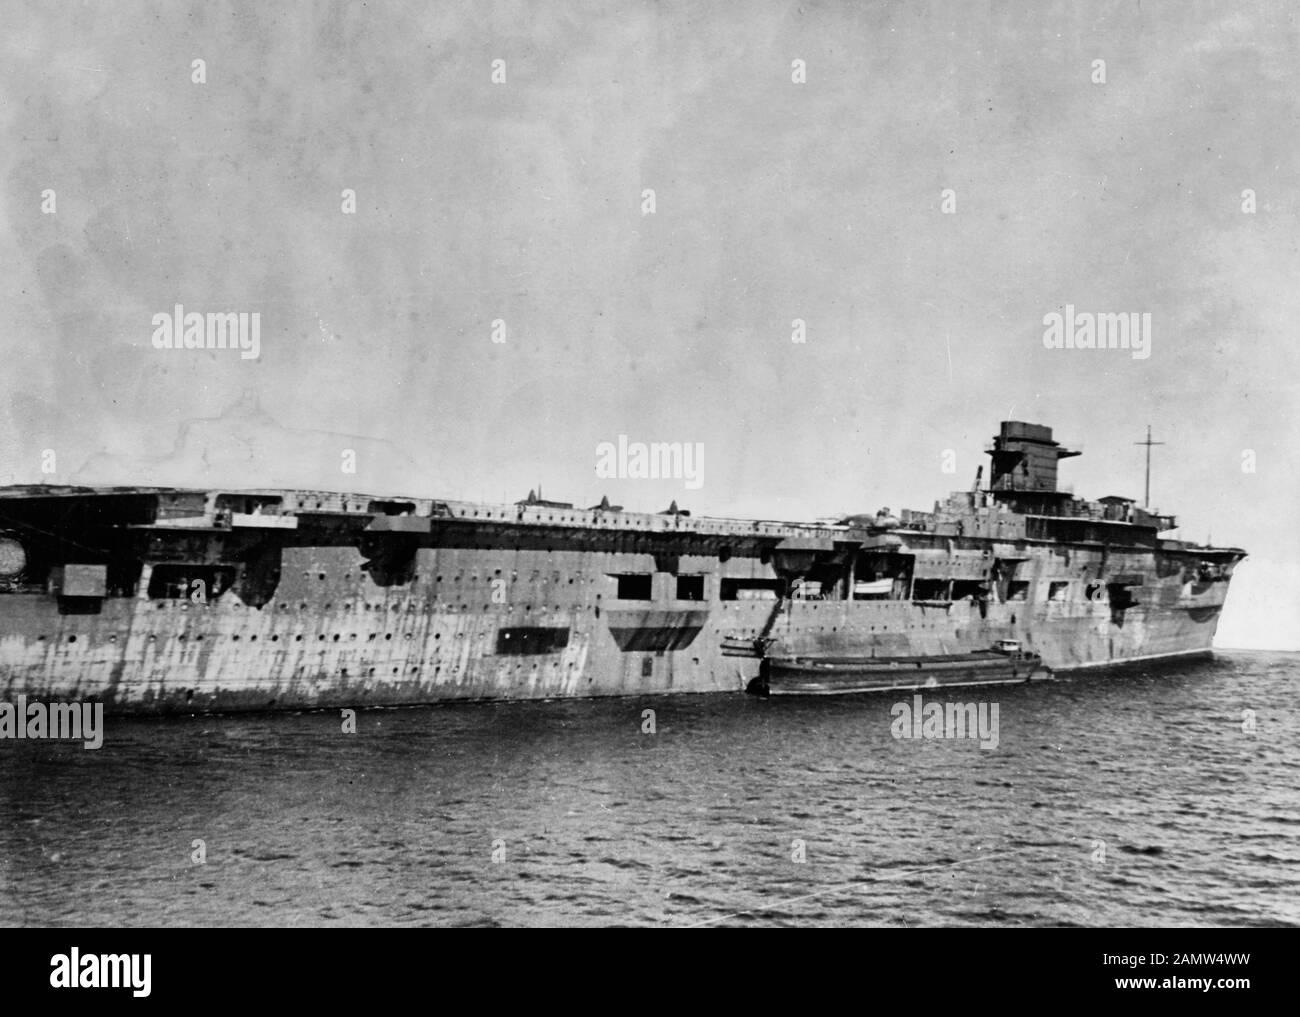 The former German aircraft carrier Graf Zeppelin on 5 April 1947 at Swinemünde (today Świnoujście, Poland) while in Soviet custody. The scuttled carrier had been refloated in March 1946 and was sunk as a target in the Baltic Sea on 16 August 1947. April 1947 Stock Photo